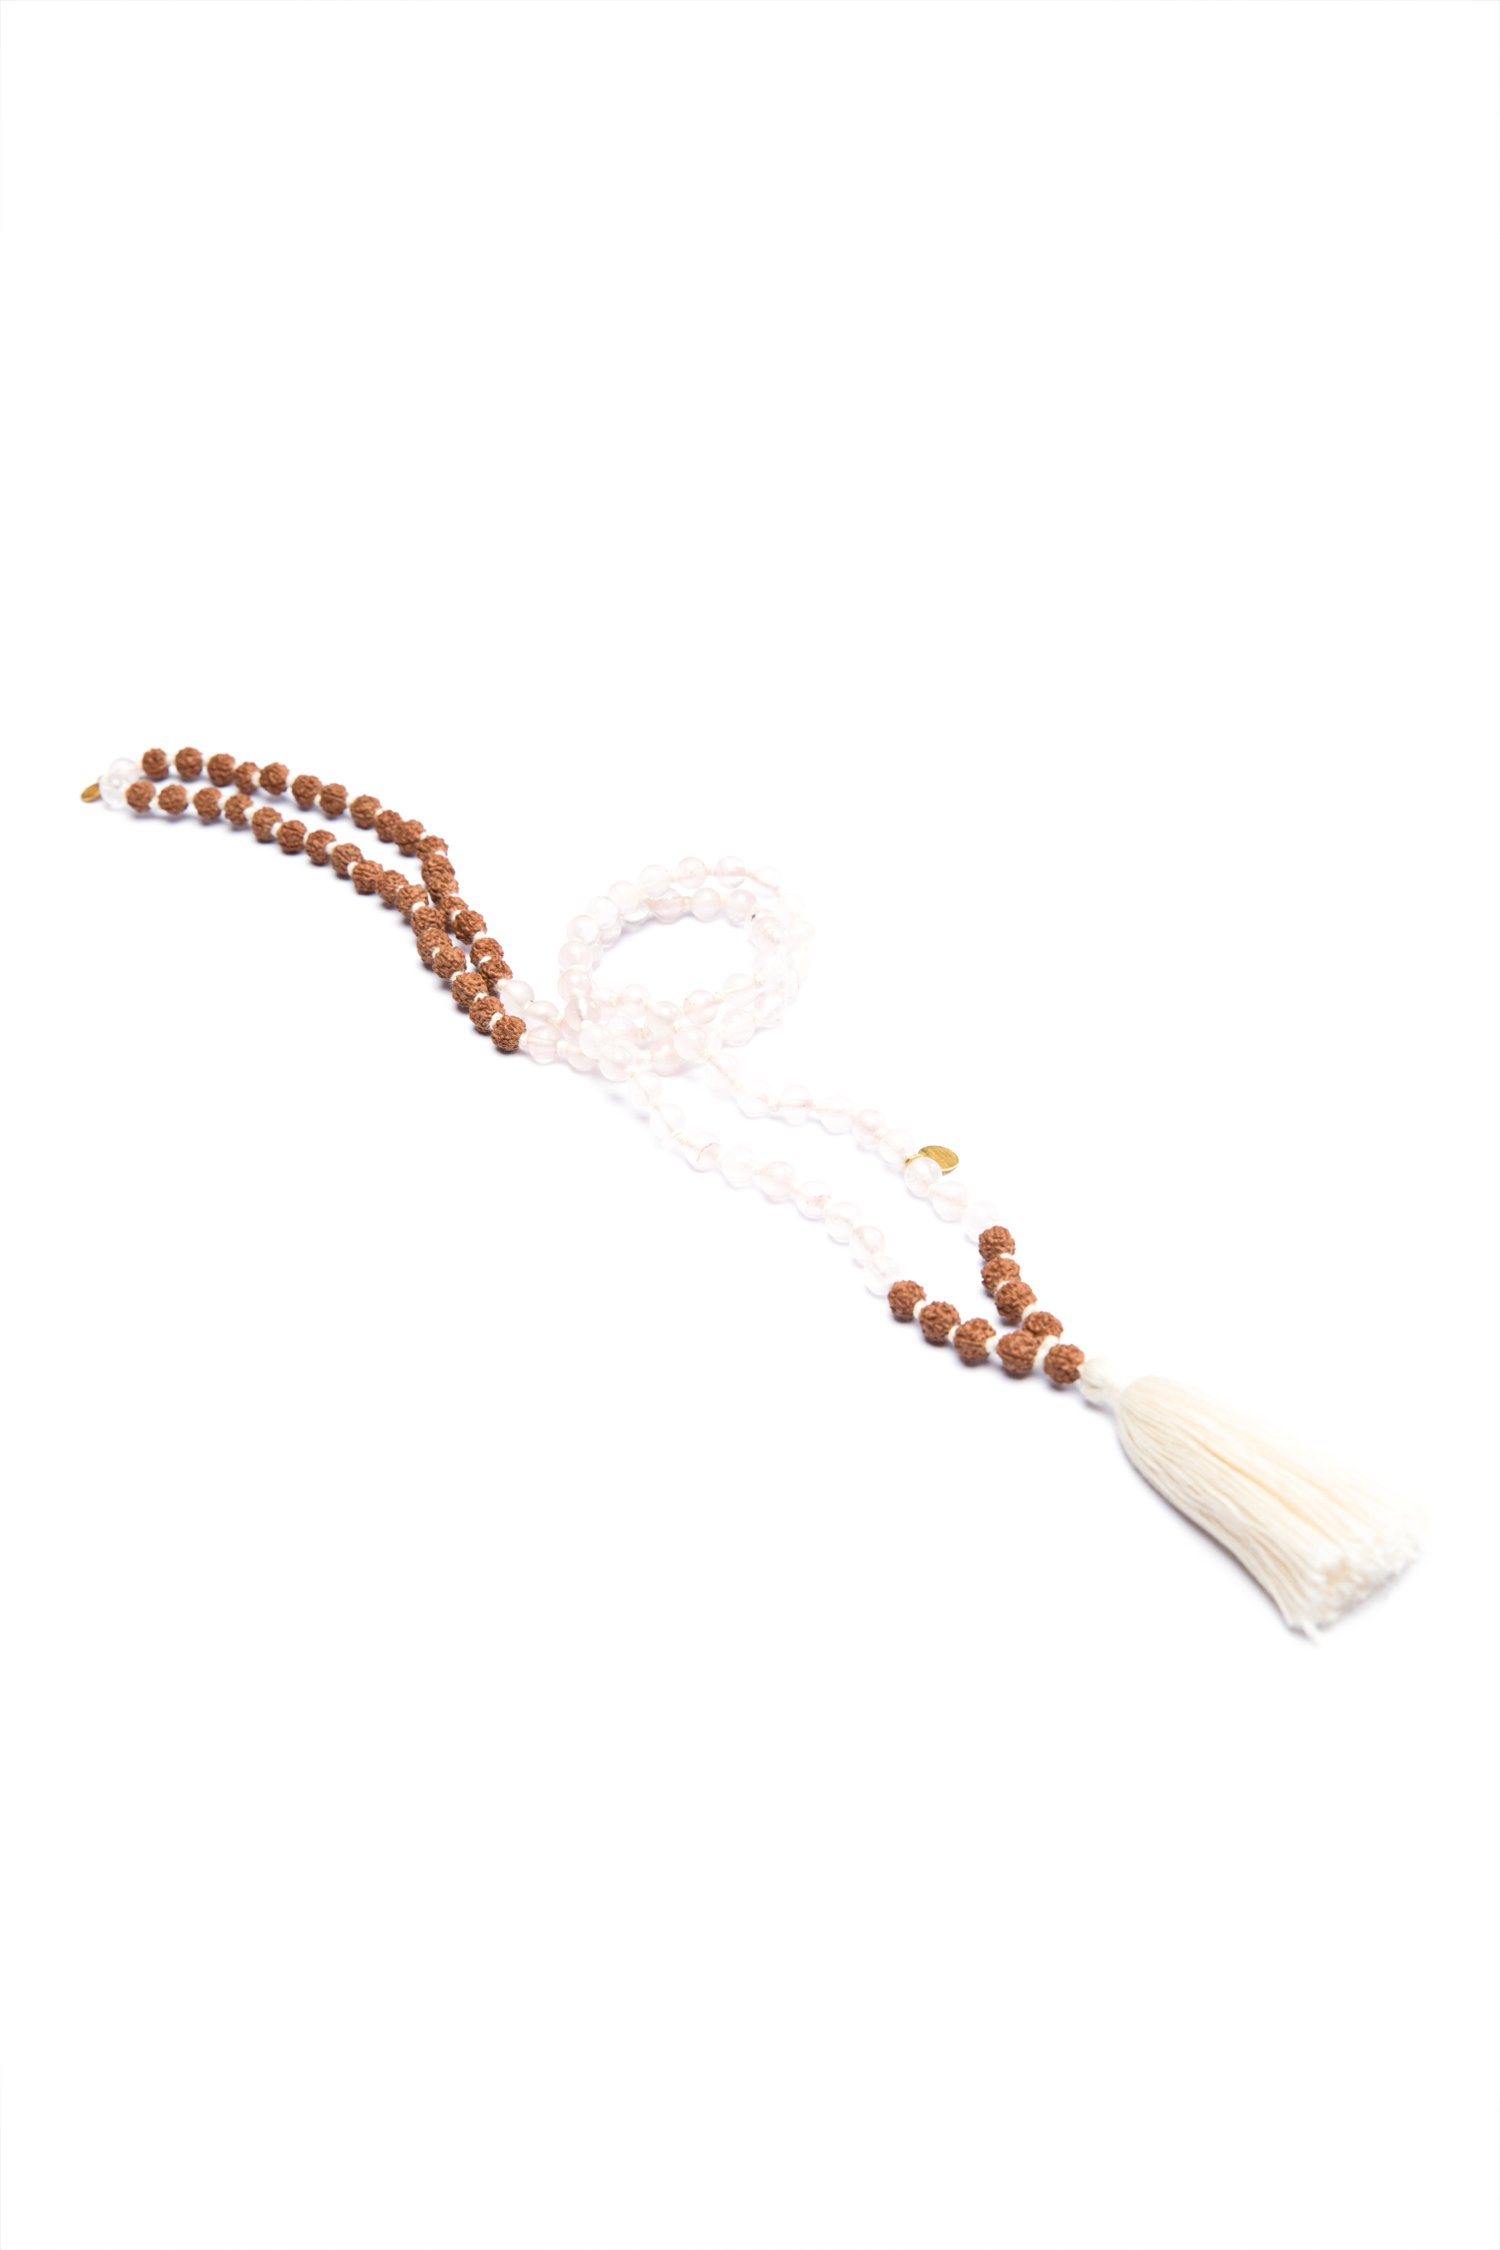 The Self Love Mala